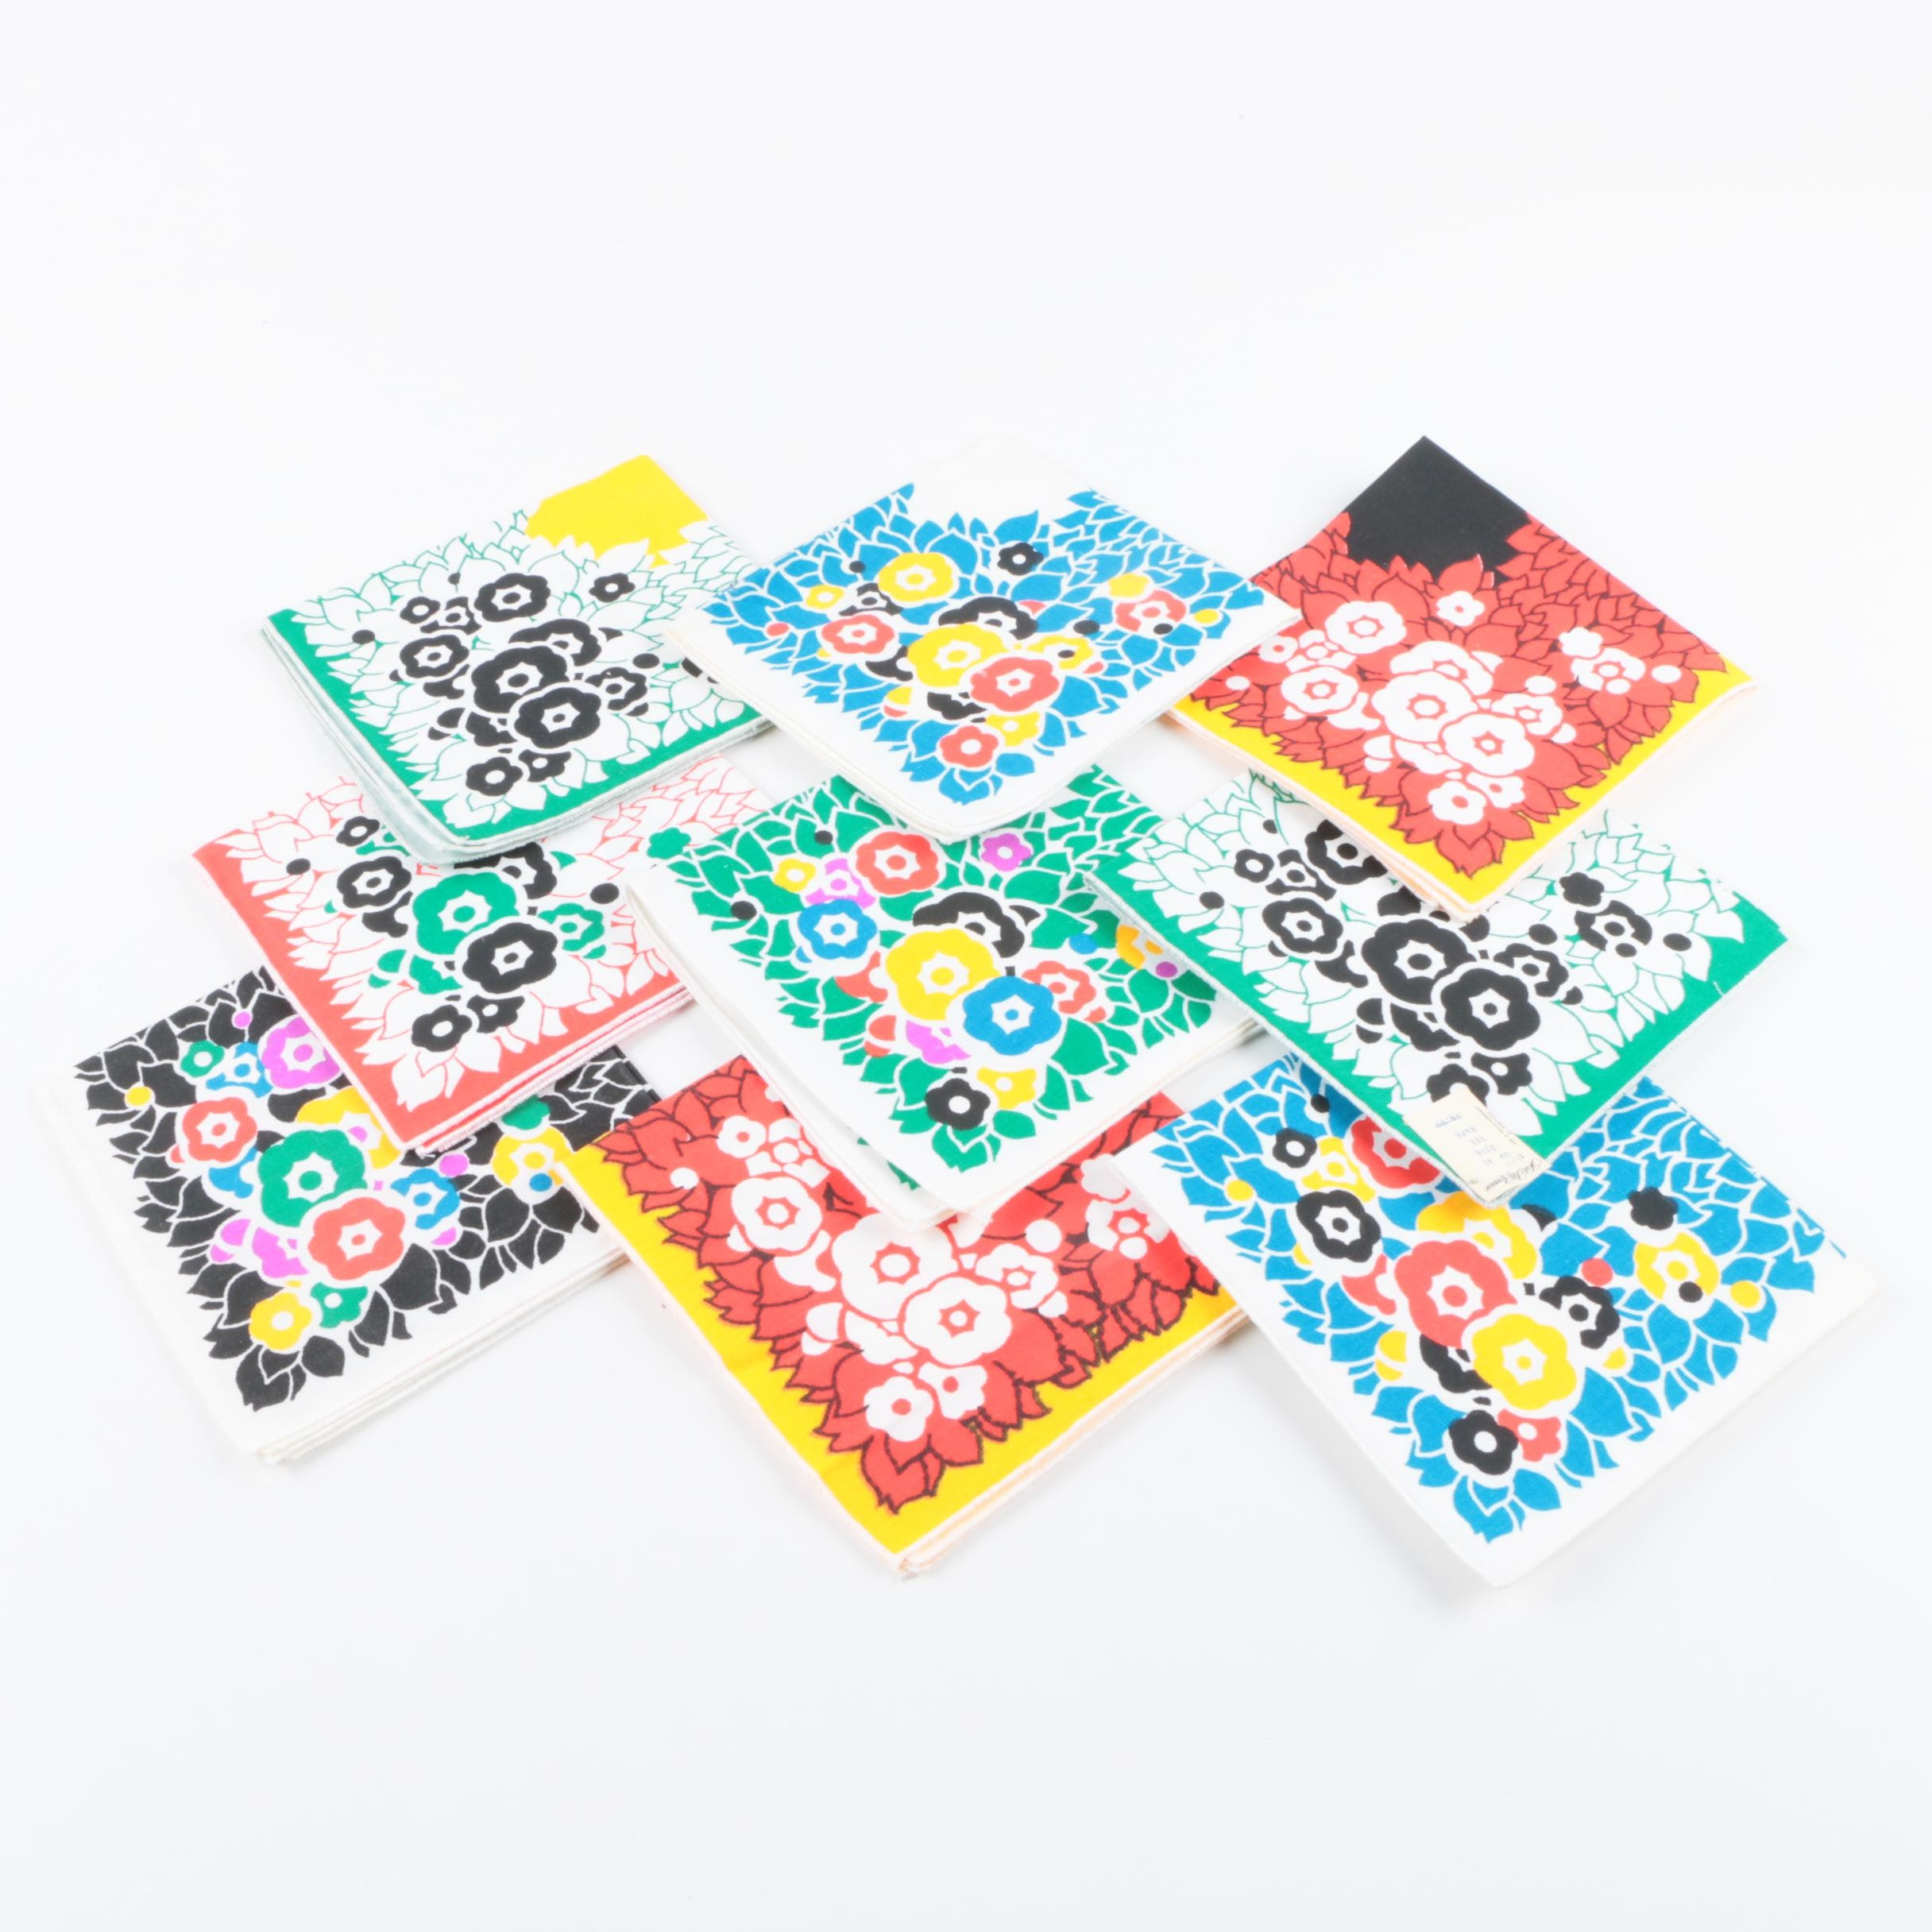 Assortment of Vintage Handkerchiefs with Floral Patterns